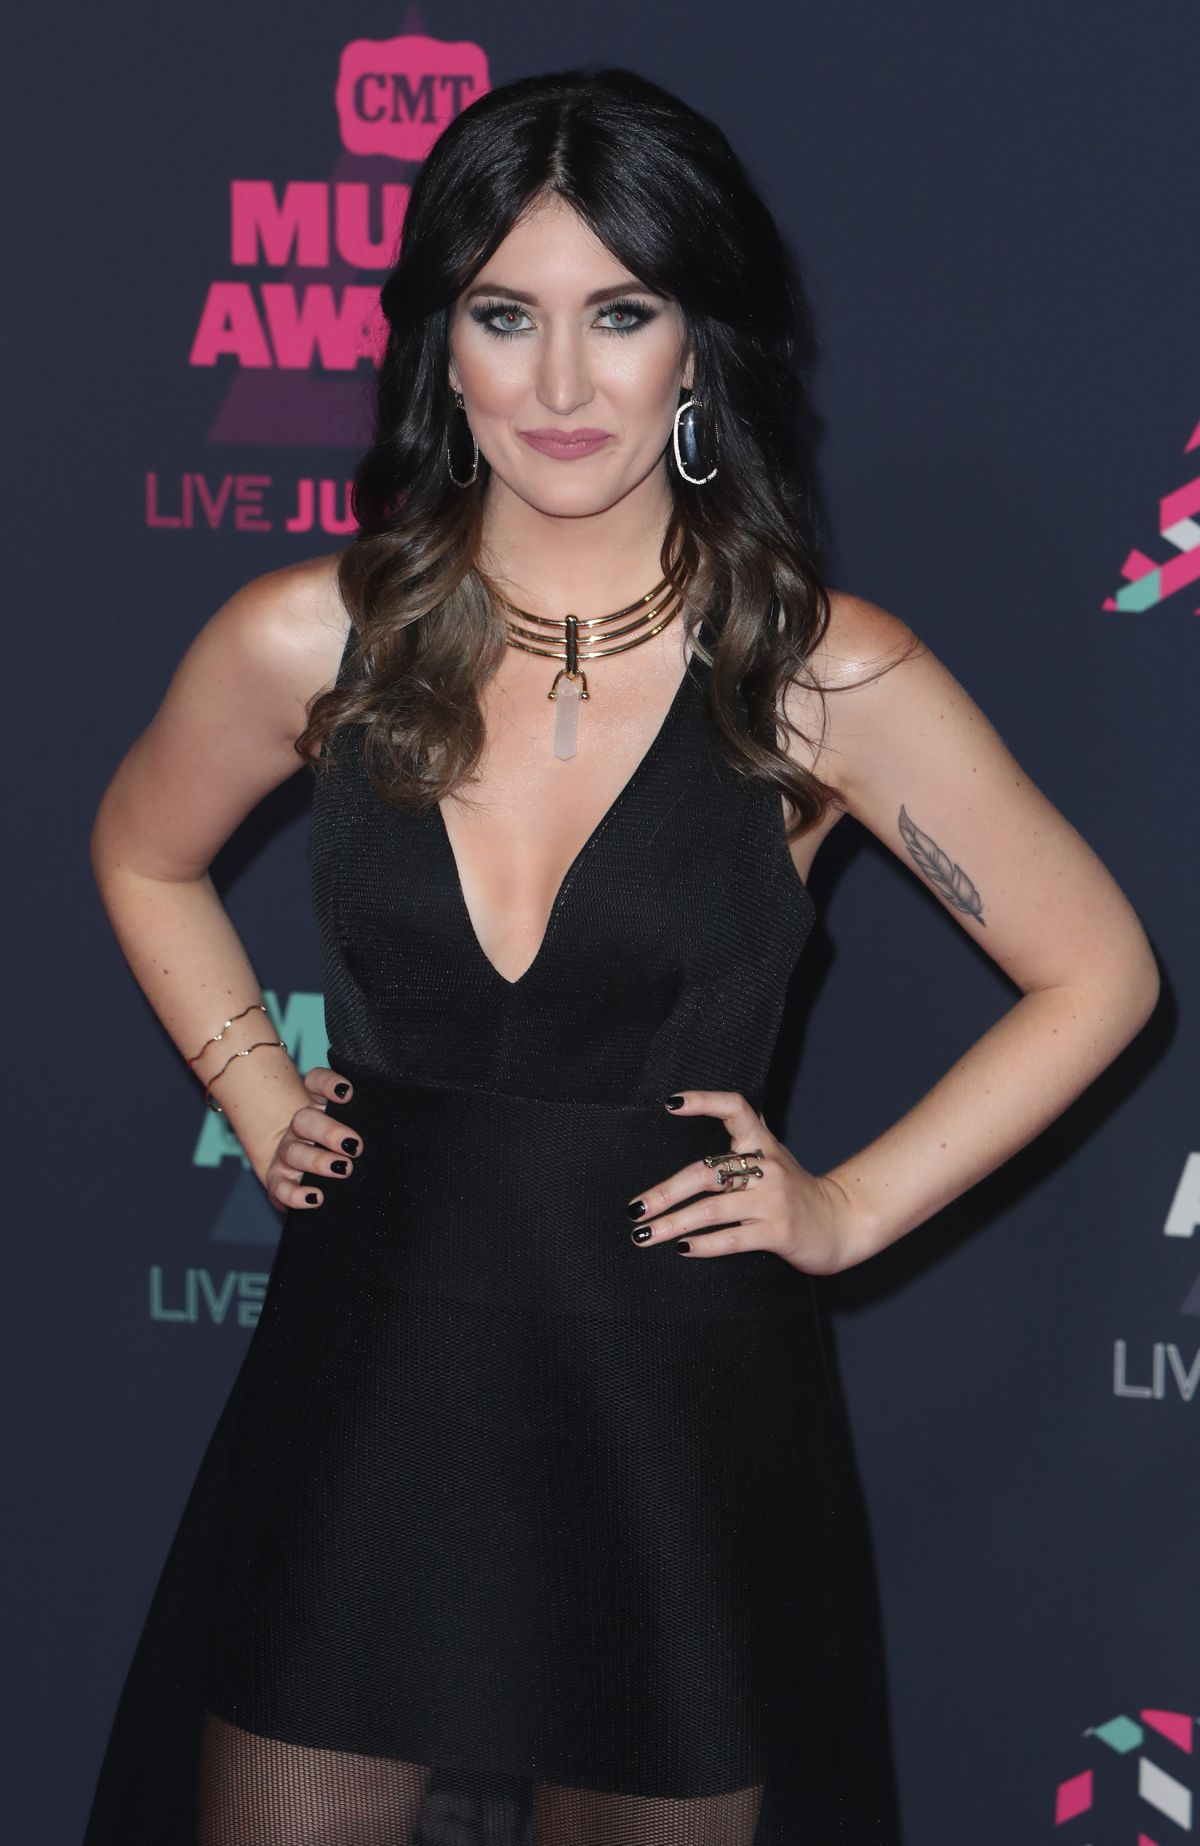 AUBRIE SELLERS at 2016 CMT Music Awards in Nashville 06/08/2016